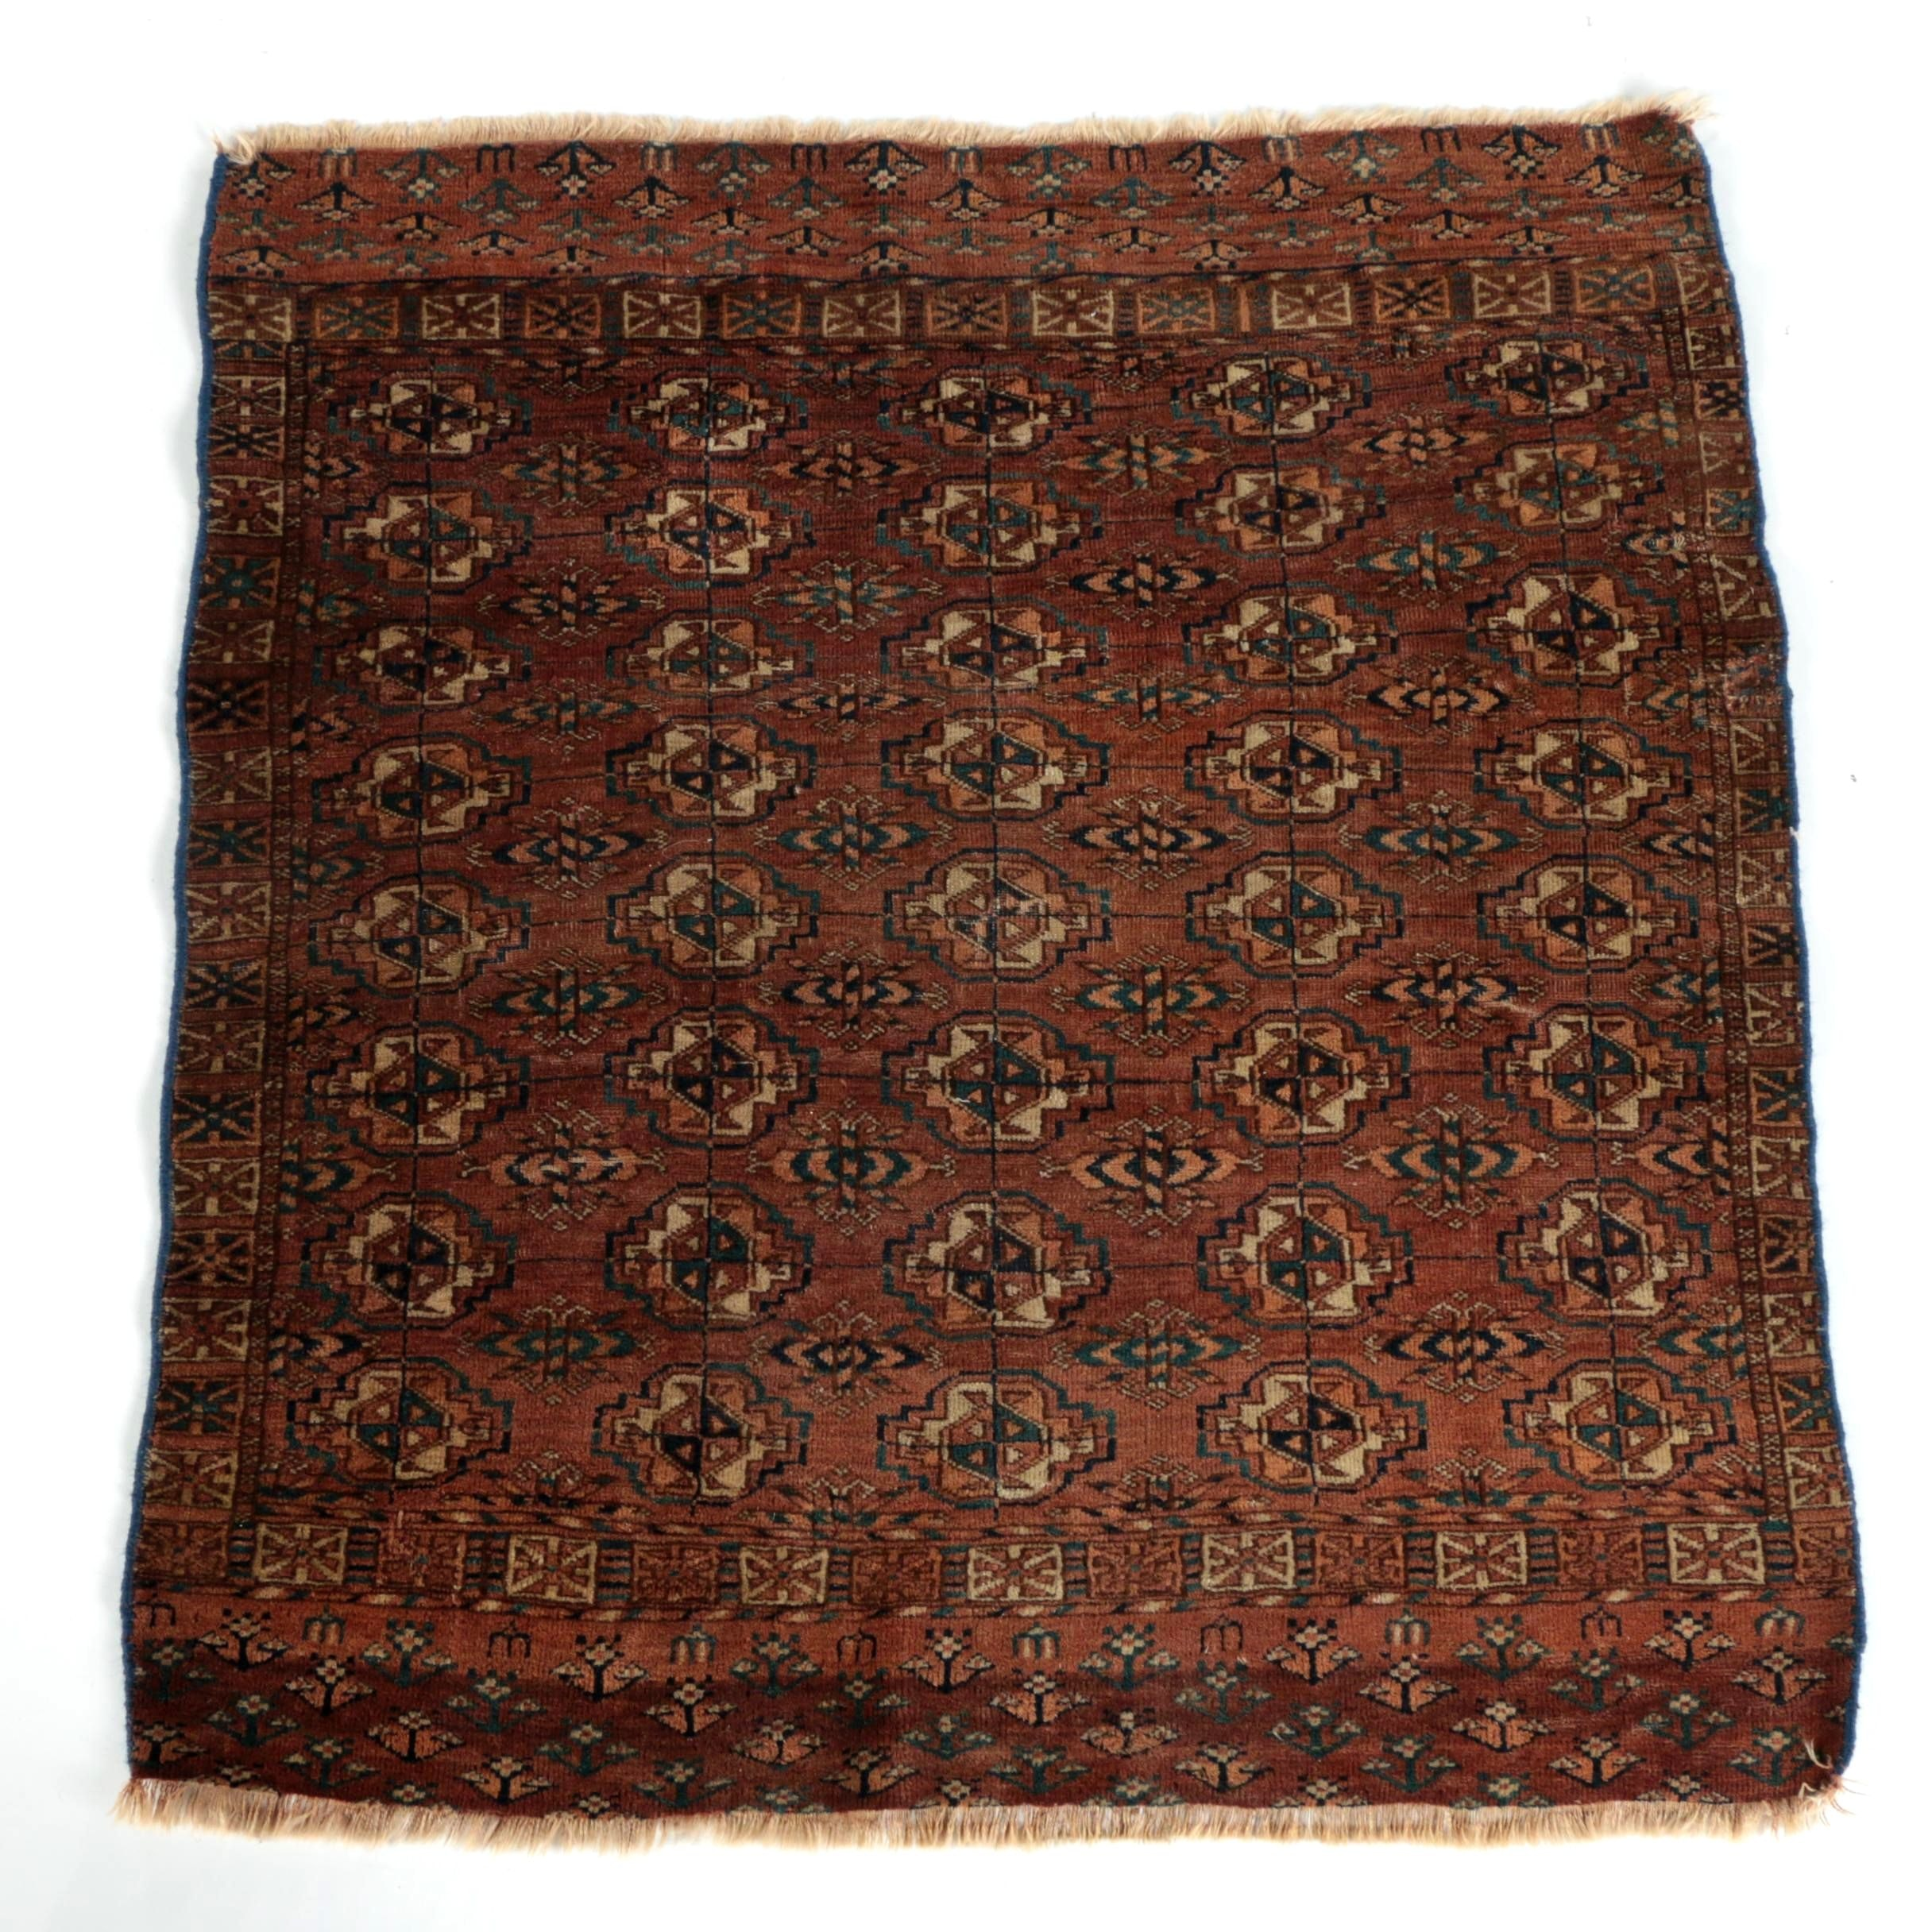 Semi-Antique Hand-Knotted Turkmen Tribal Wool Accent Rug